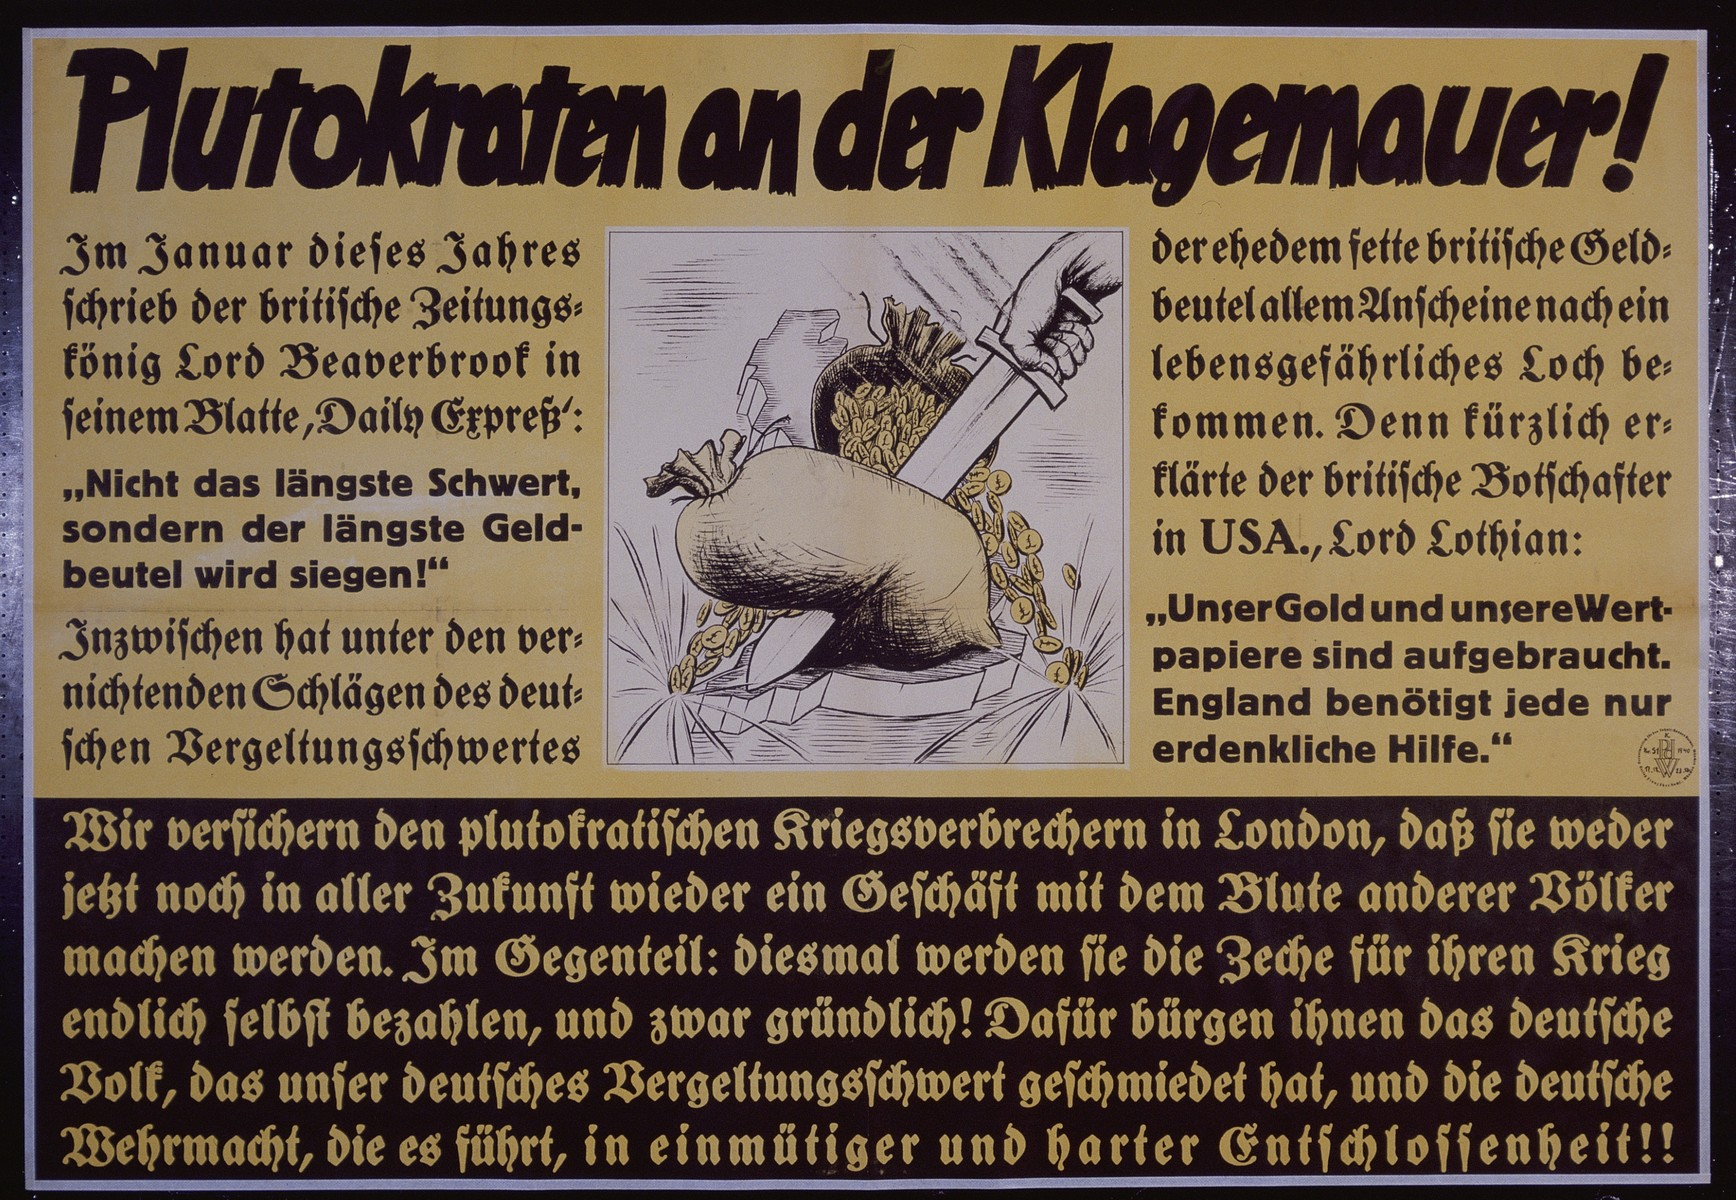 """Nazi propaganda poster entitled, """"Plutokraten an der Klagemauer,"""" issued by the """"Parole der Woche,"""" a wall newspaper (Wandzeitung) published by the National Socialist Party propaganda office in Munich."""